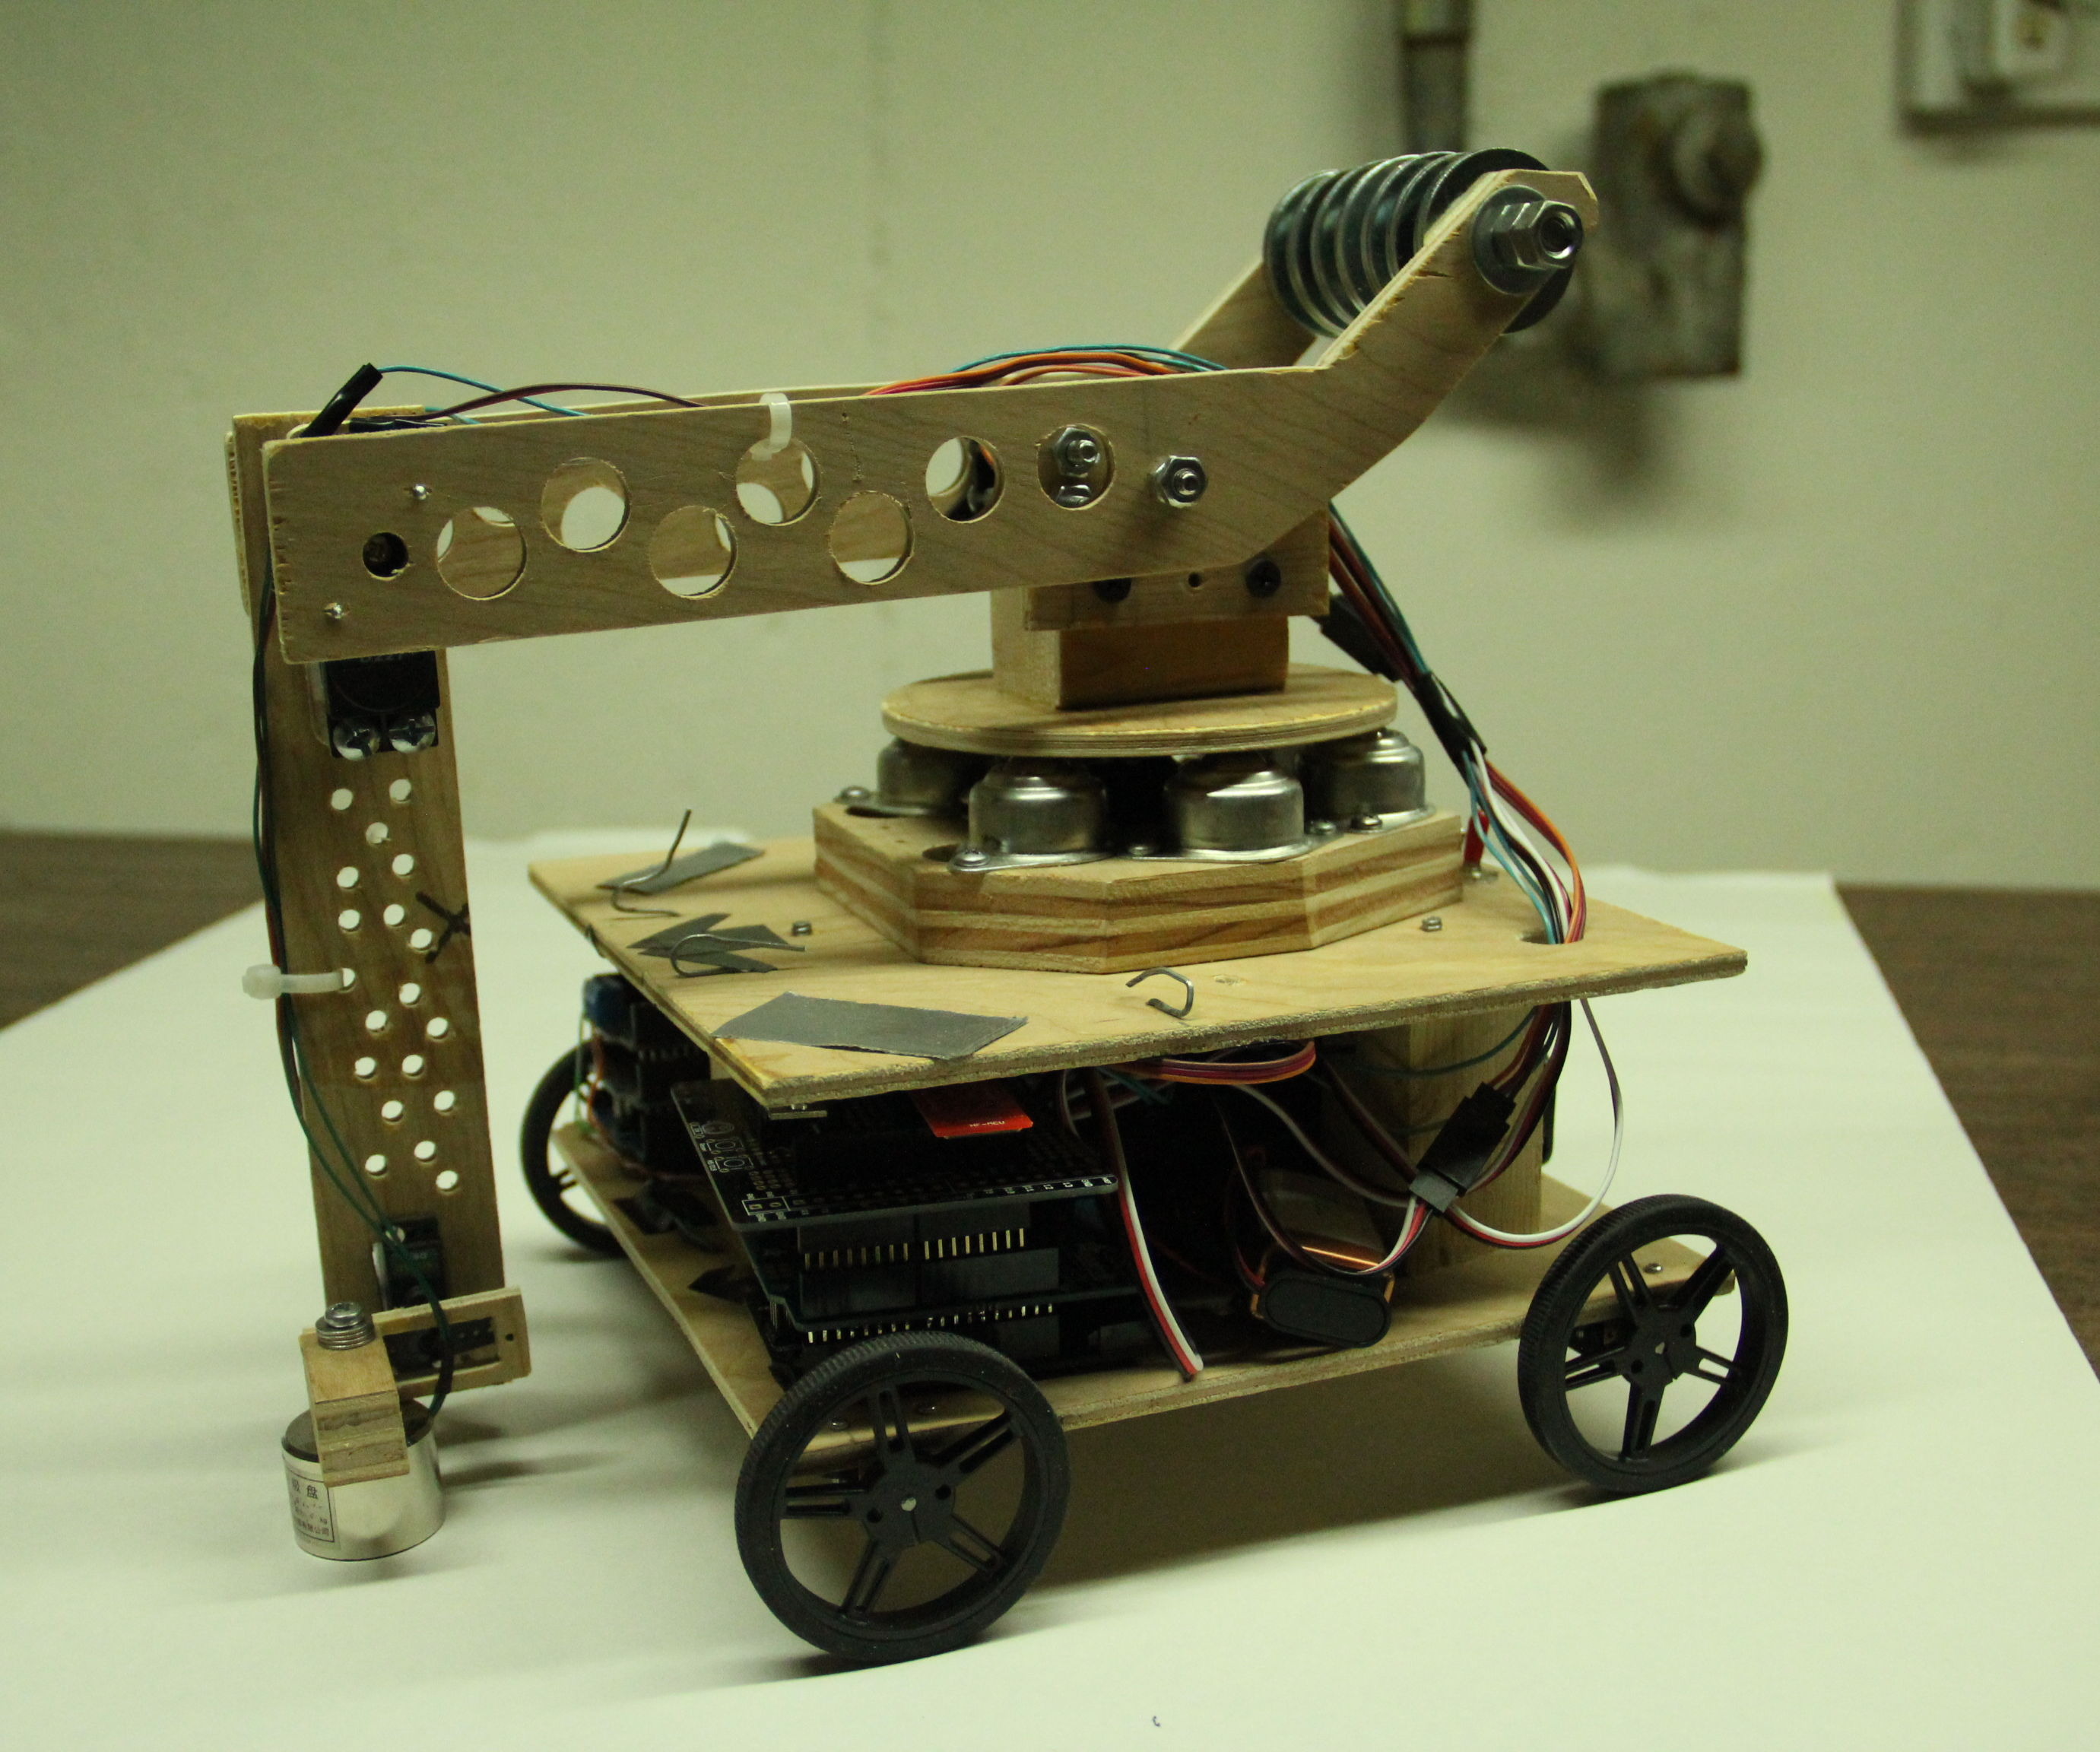 Robo-Mobile - A Homemade Bluetooth Robot